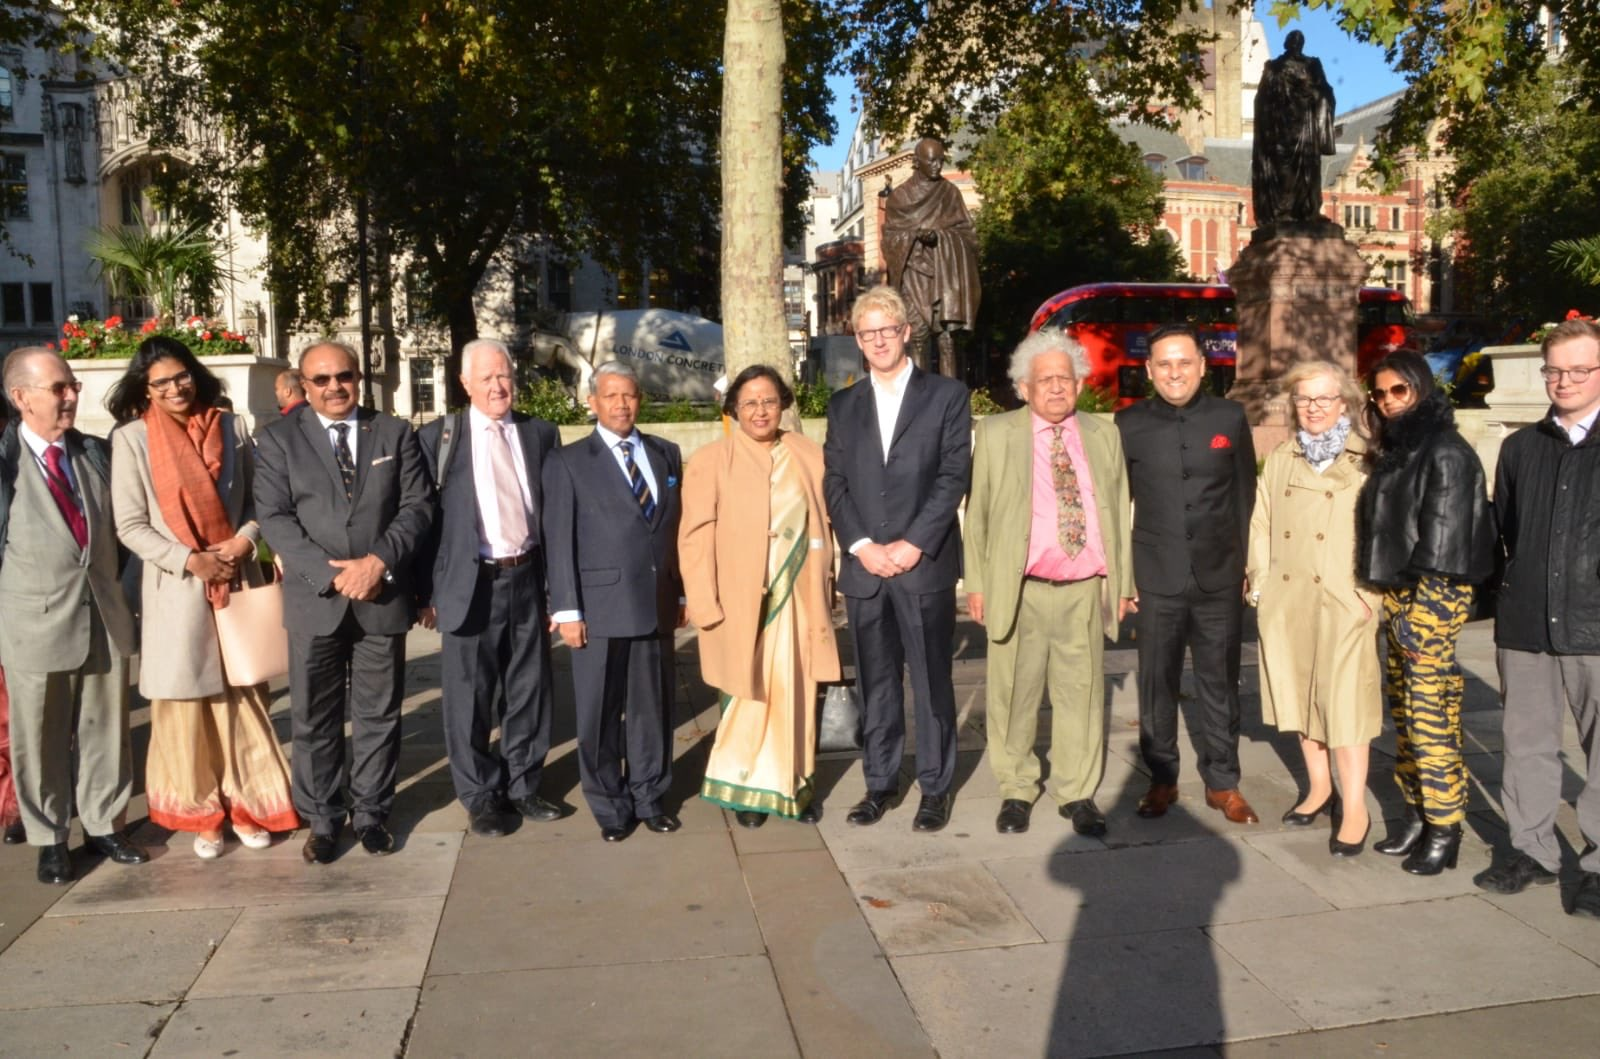 HC  @RuchiGhanashyam , along with Peers, MPs, Senior Deputy Speaker  @UKHouseofLords , Lord McFall, Baroness Blackstone paid tribute at the statue of #MahatmaGandhi at #parliamentsquare. The event was organised by Lord Meghnad Desai